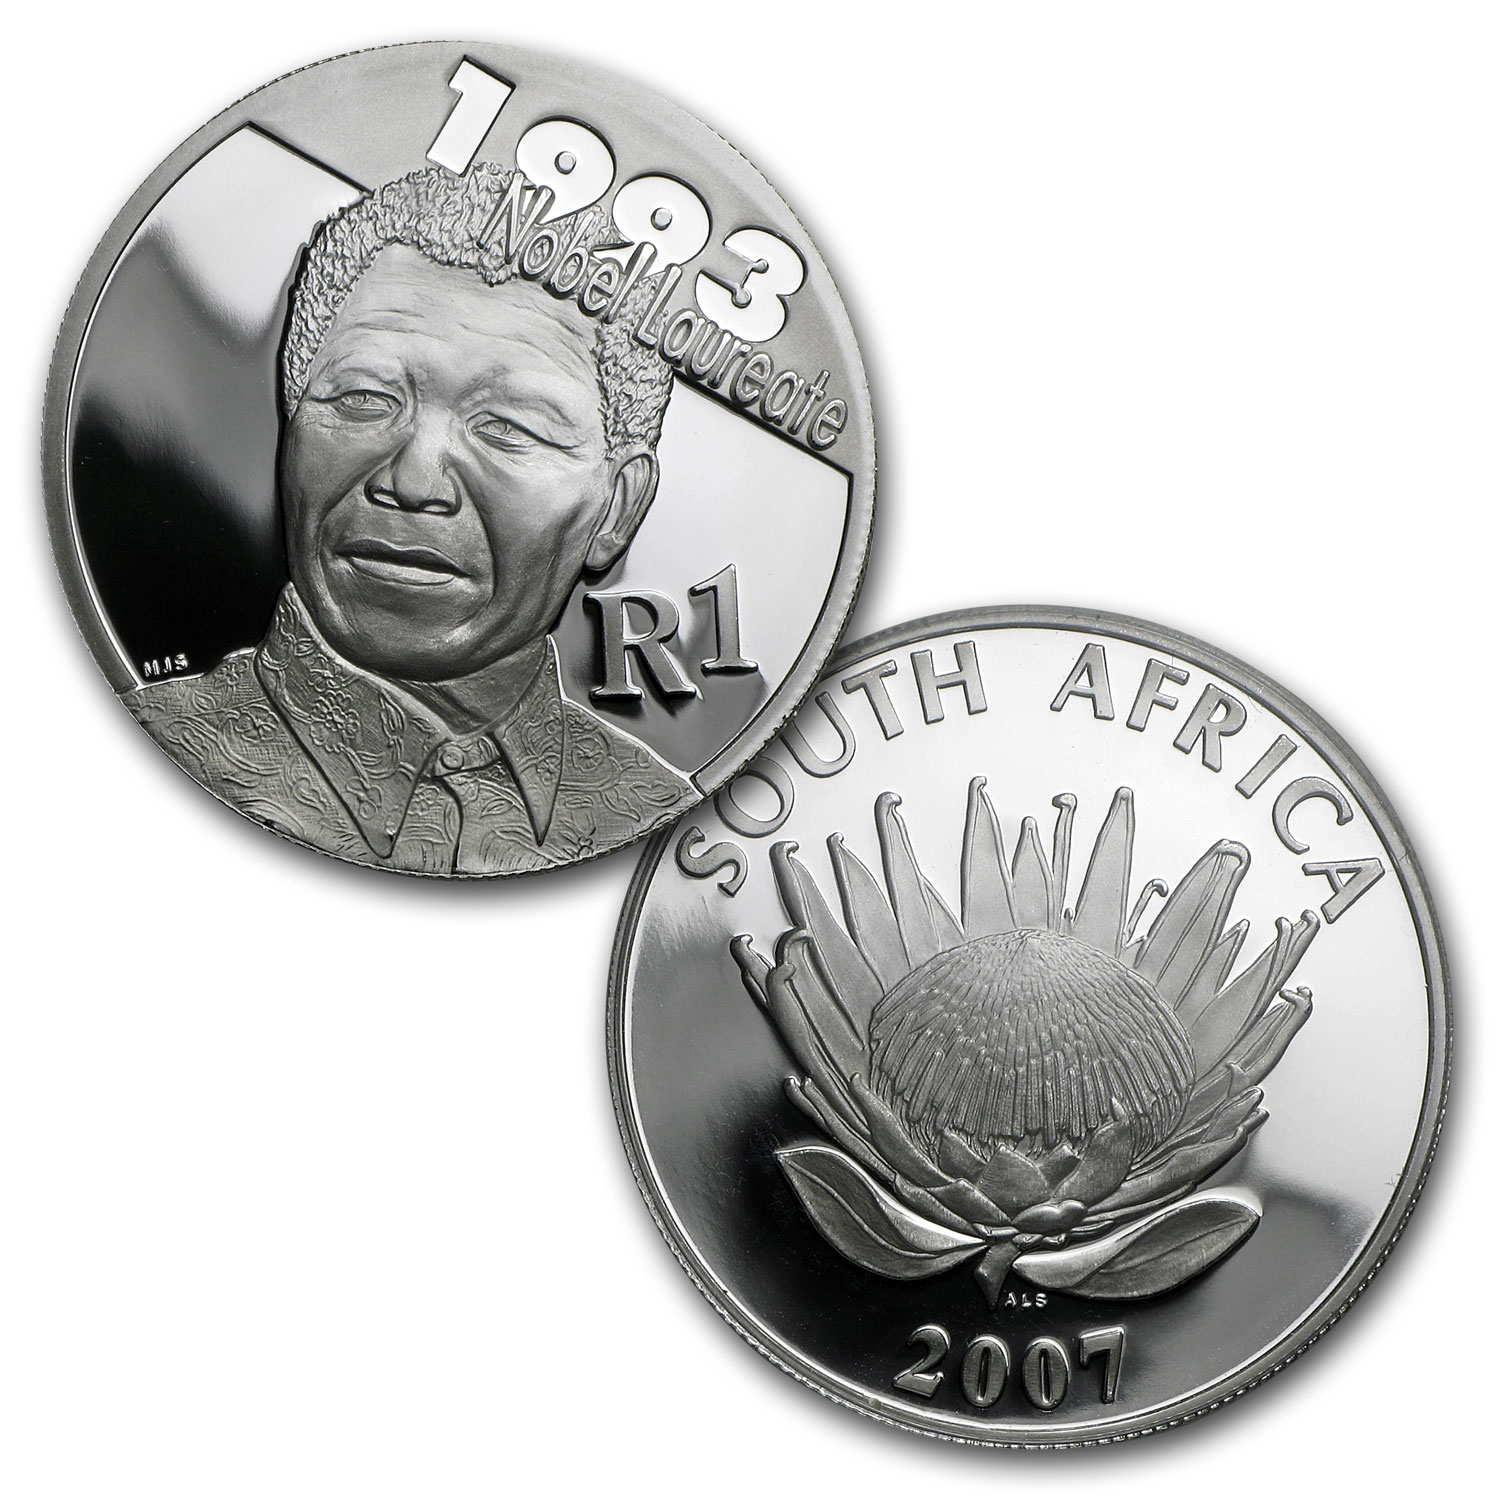 2007 South Africa 5-Coin Mandela/de Klerk Protea Set Proof